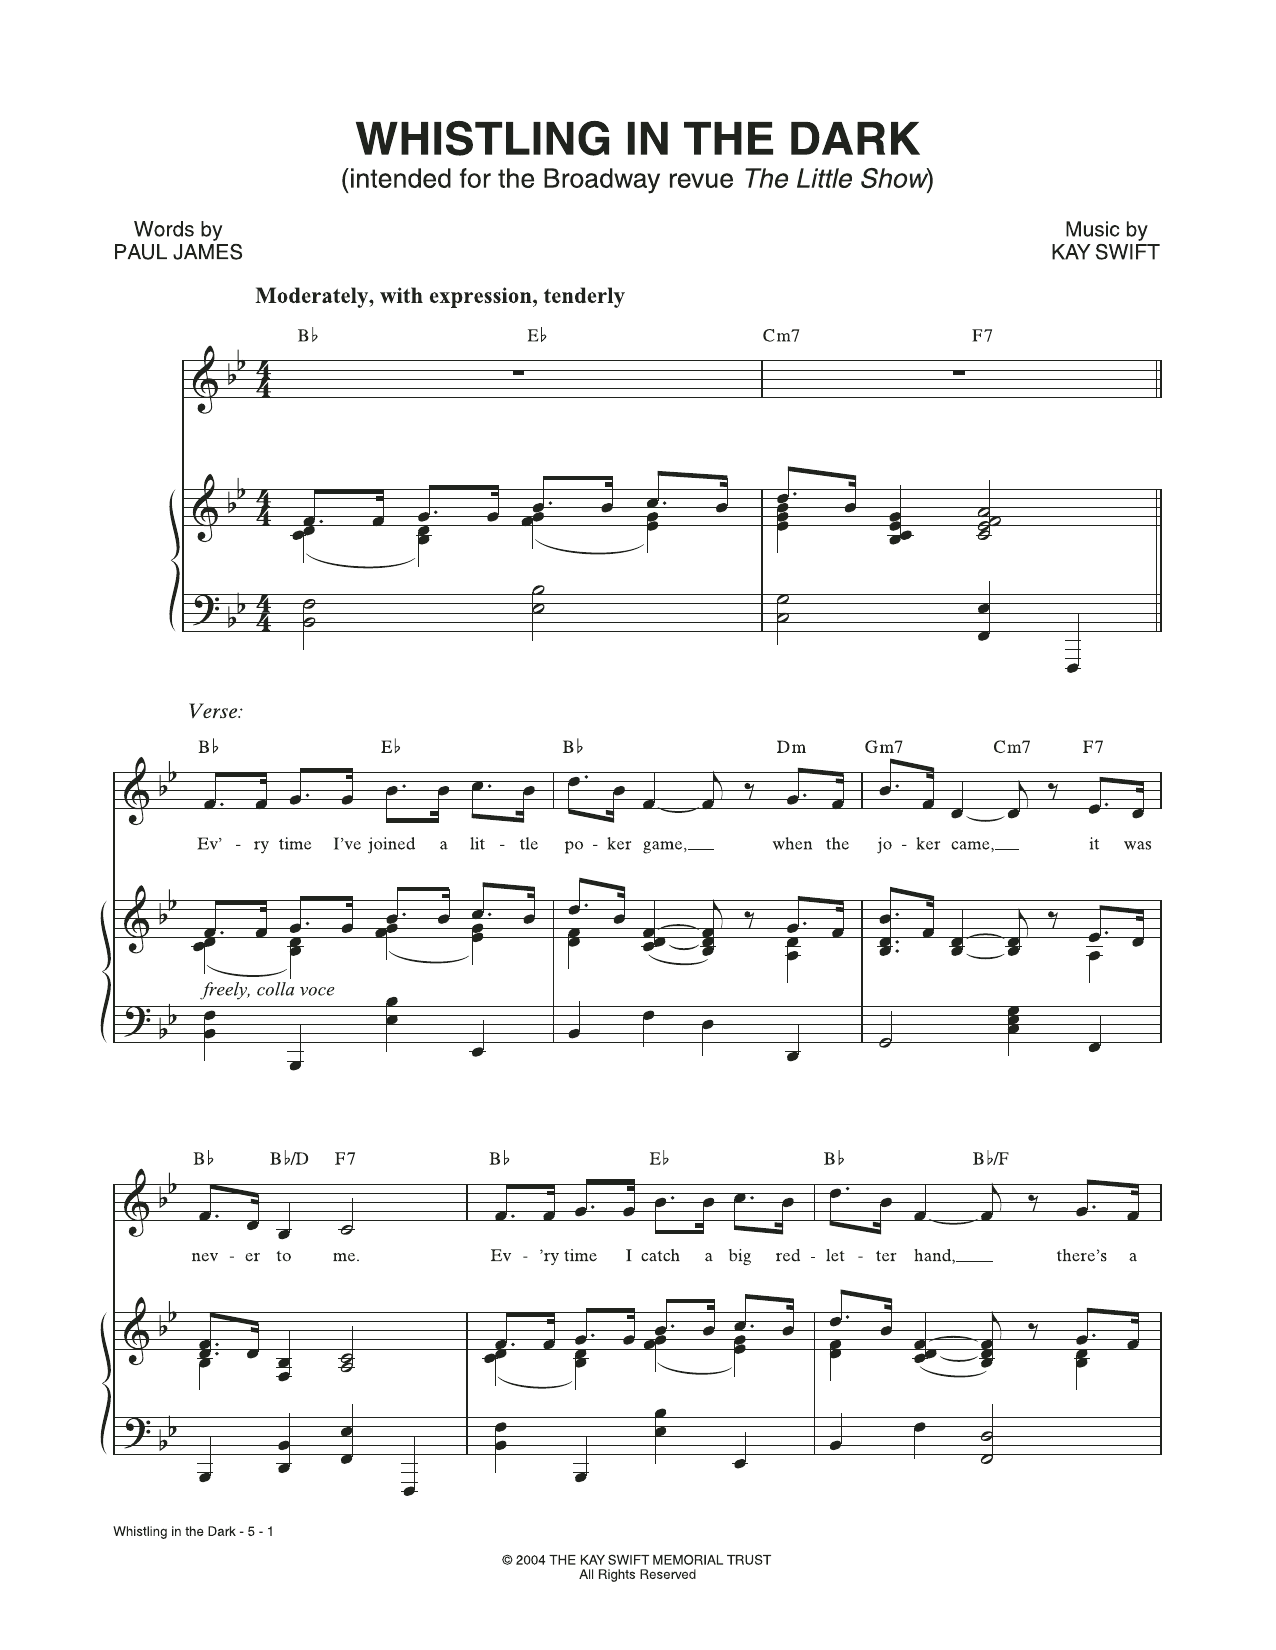 Kay Swift & Paul James Whistling In The Dark (from The Little Show) sheet music notes and chords. Download Printable PDF.